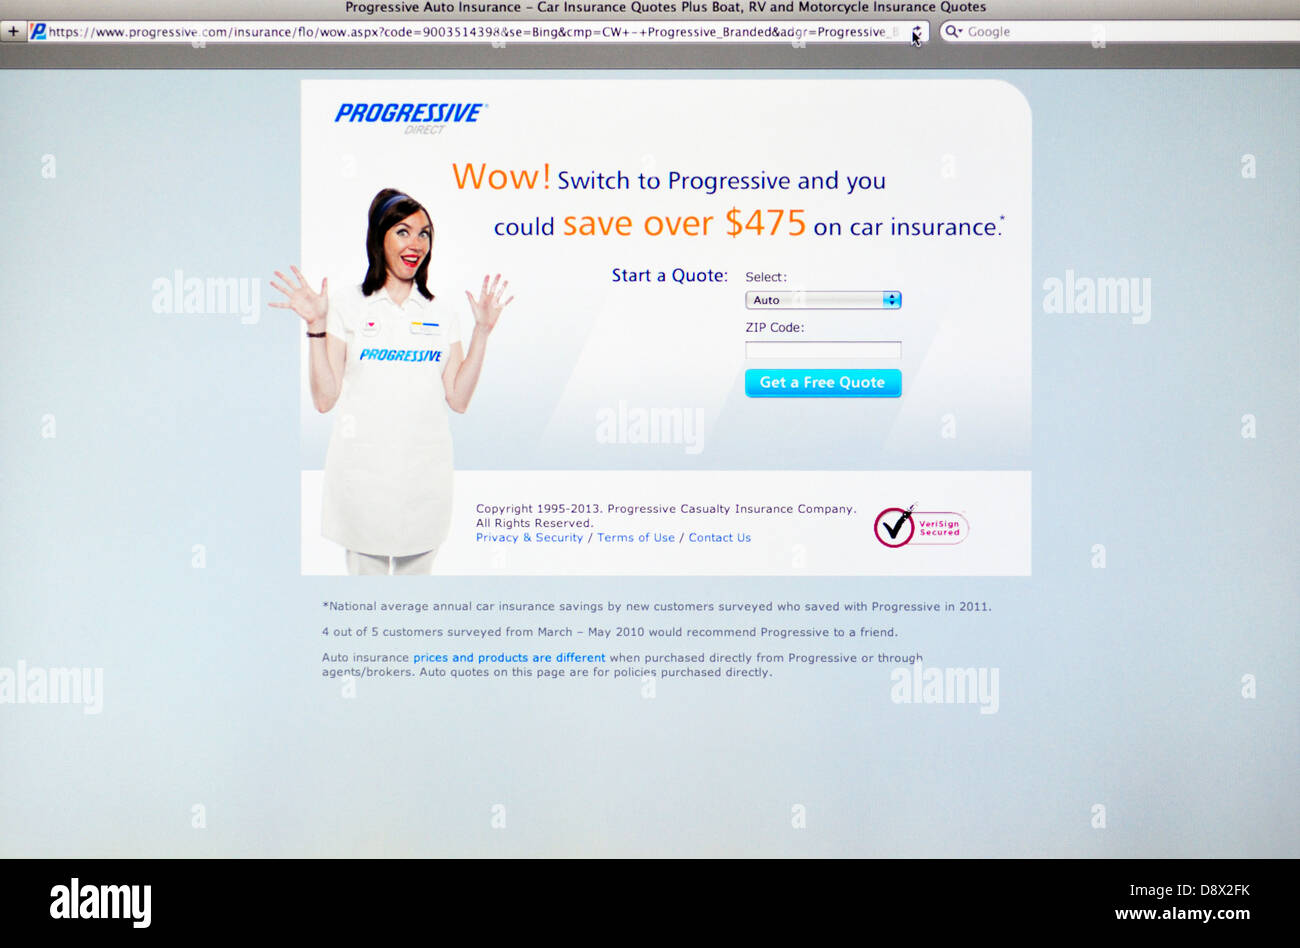 Progressive Car Insurance Quote Progressive Auto Insurance Website Stock Photo Royalty Free Image